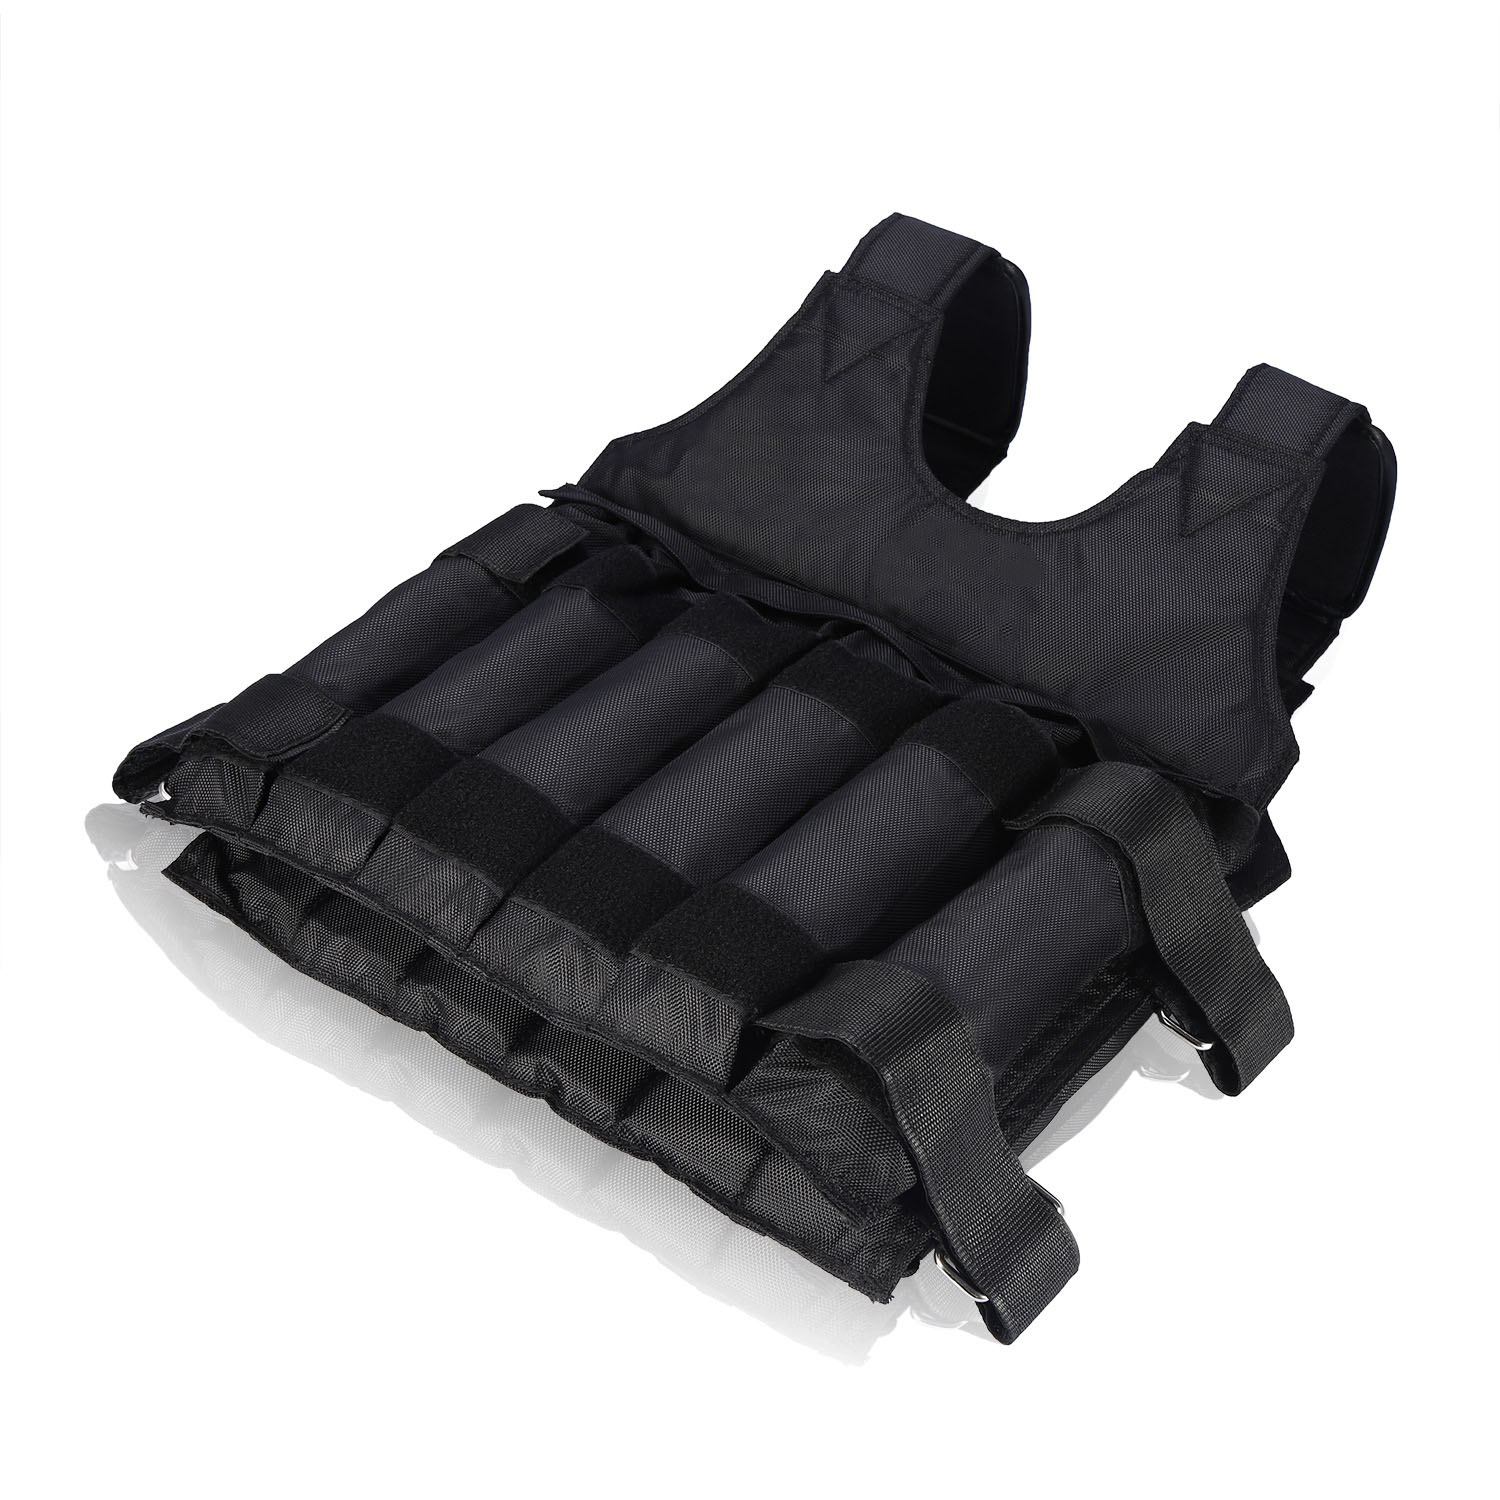 Weighted-Vest-44-110lbs-Weight-Workout-Exercise-Body-Training-Crossfit-Equipment thumbnail 15